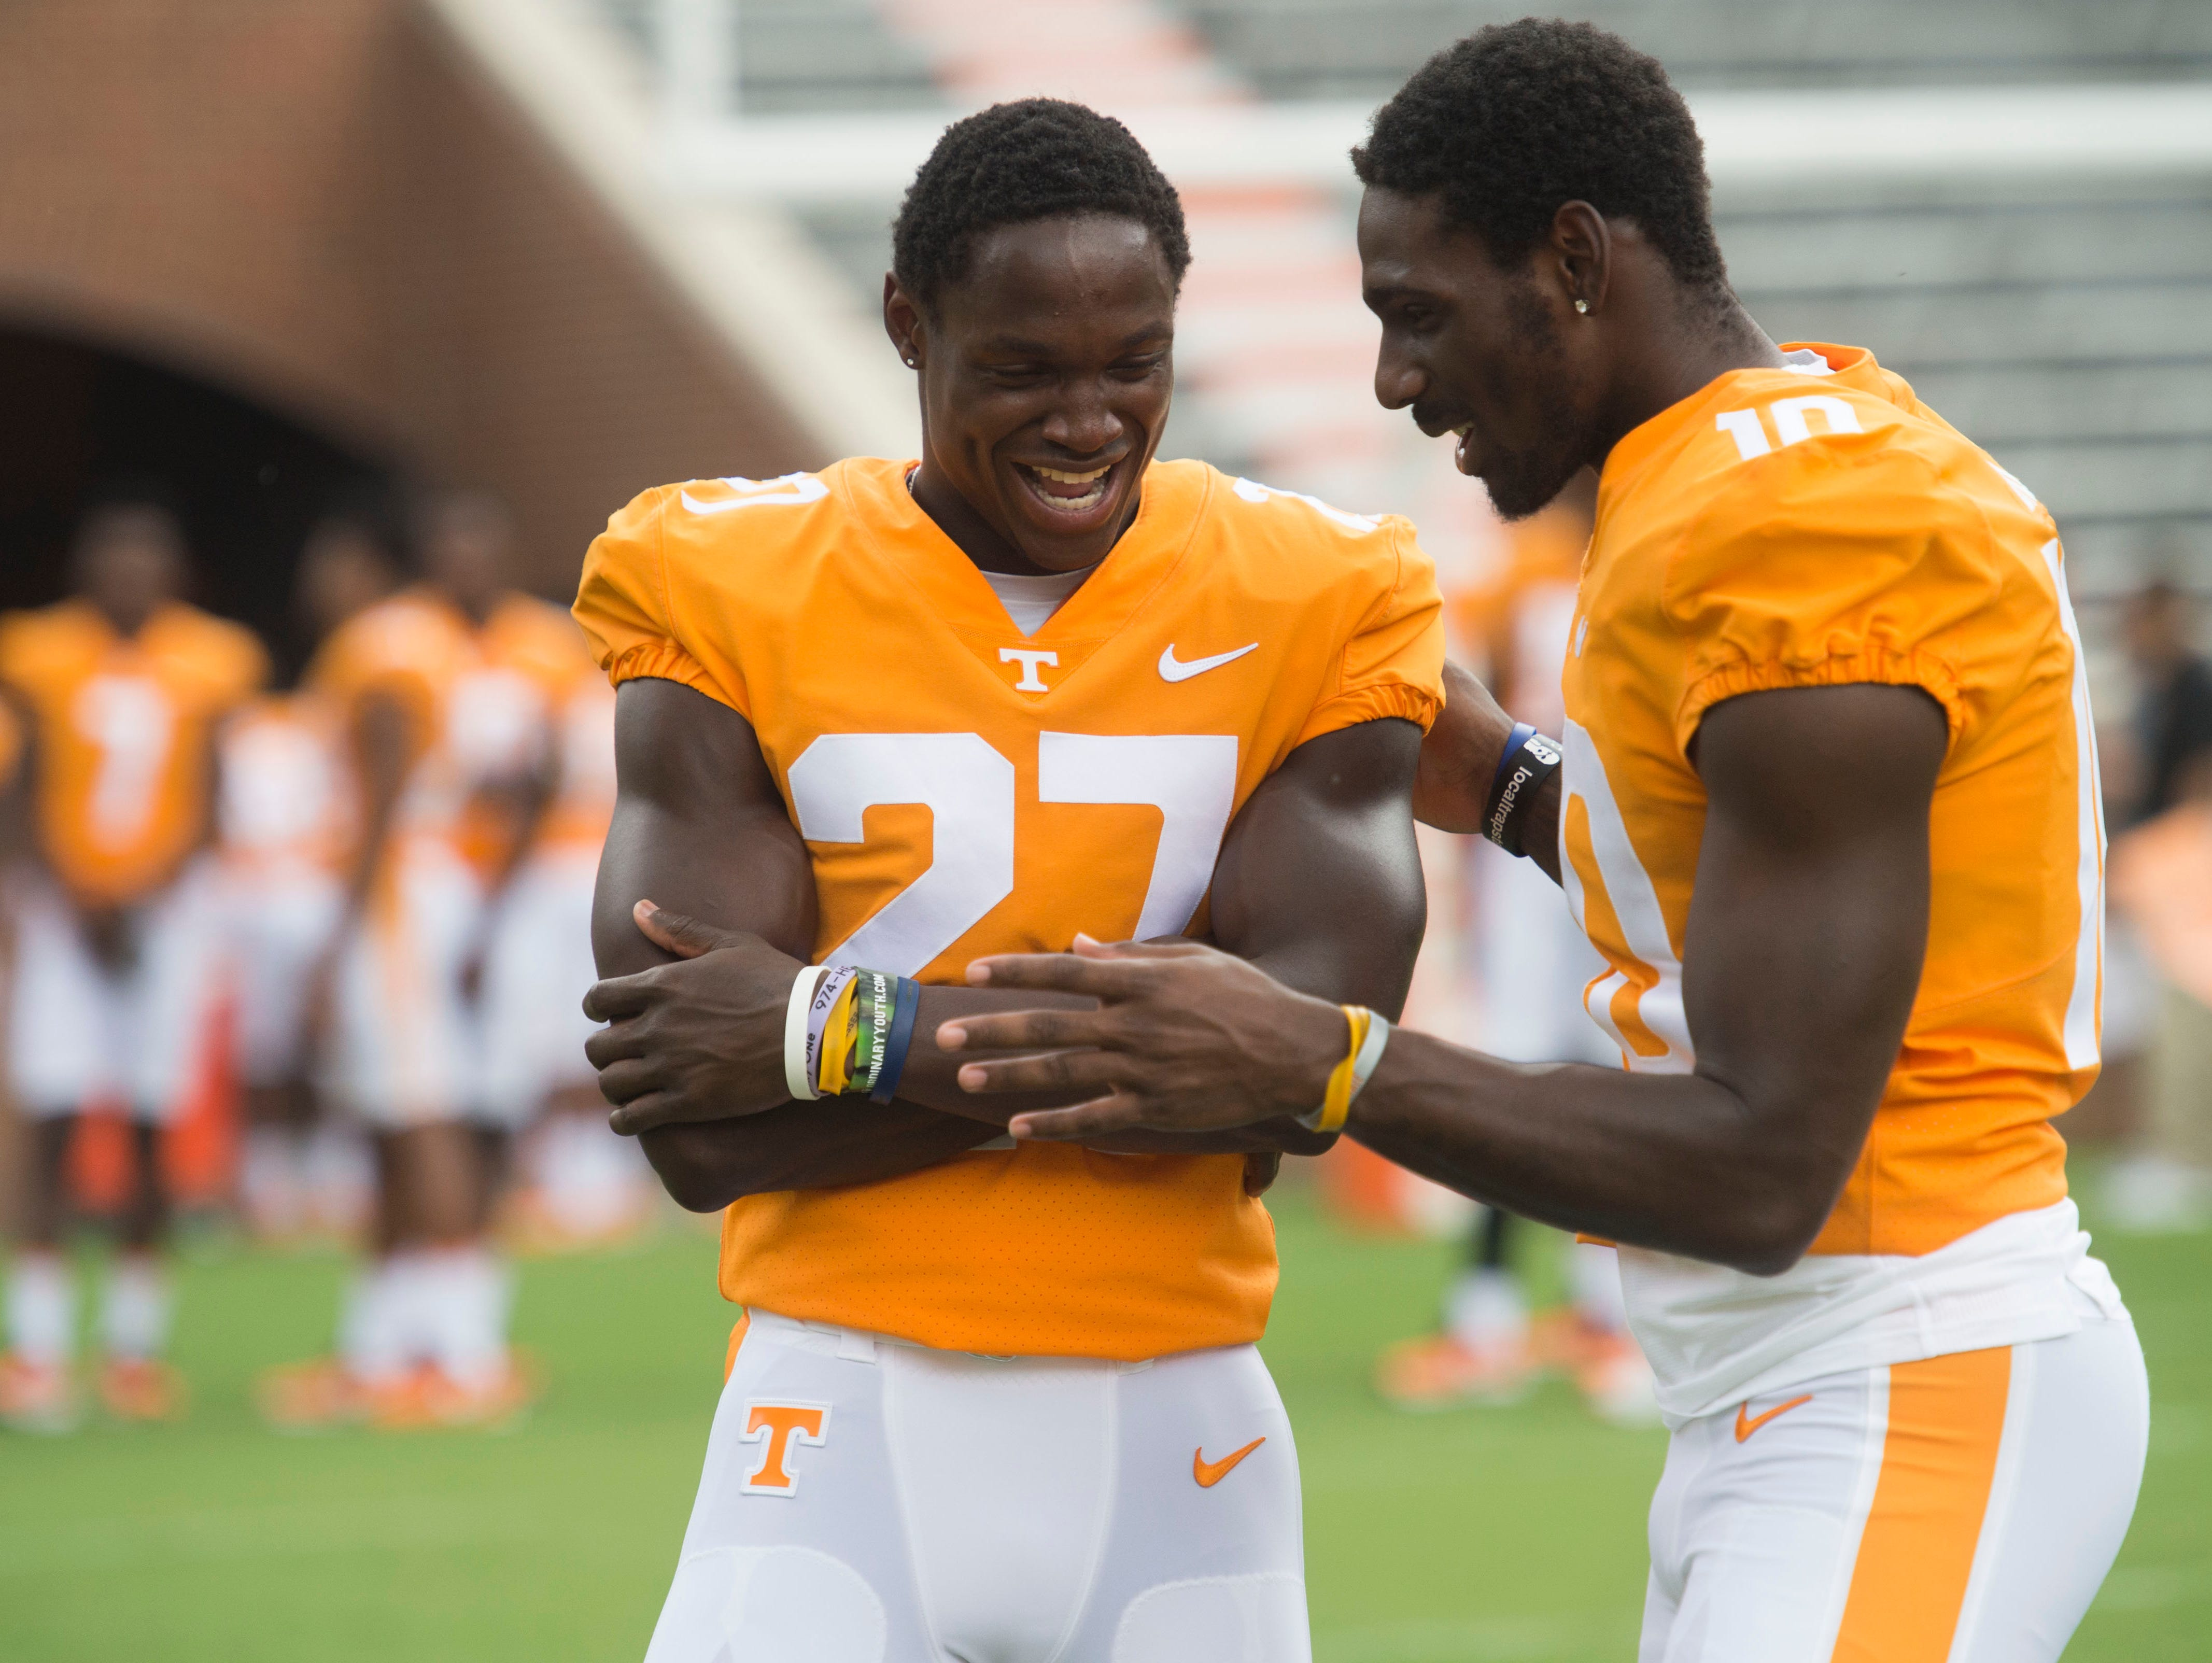 Tennessee running back Carlin Fils-aime (27), left, and wide receiver Tyler Byrd (10 during Media Day at Neyland Stadium.